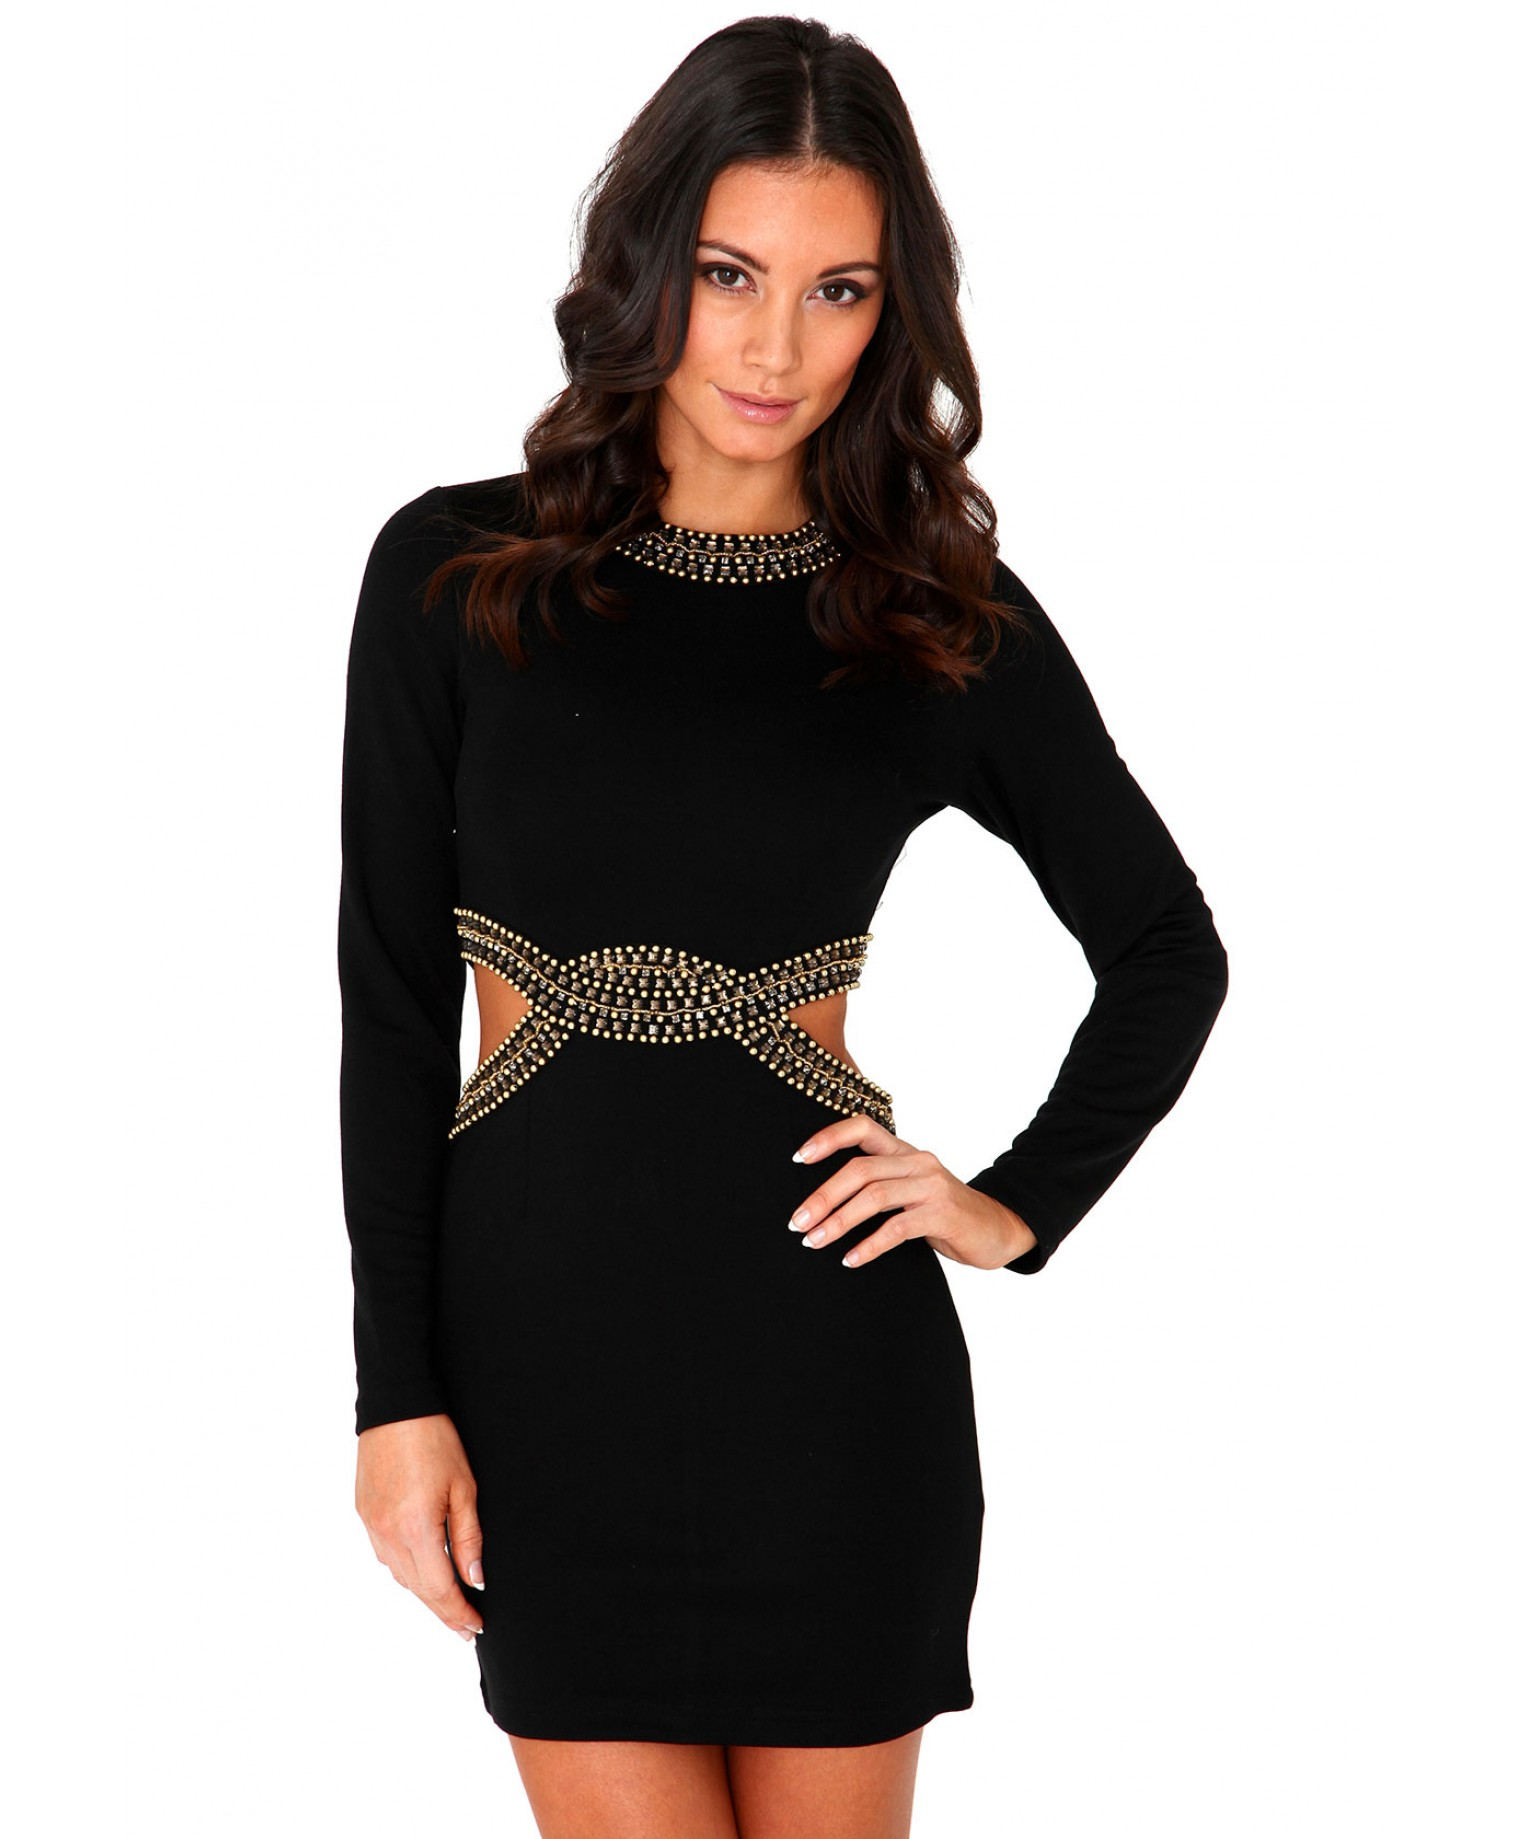 Long Sleeve Bodycon Dress Picture Collection